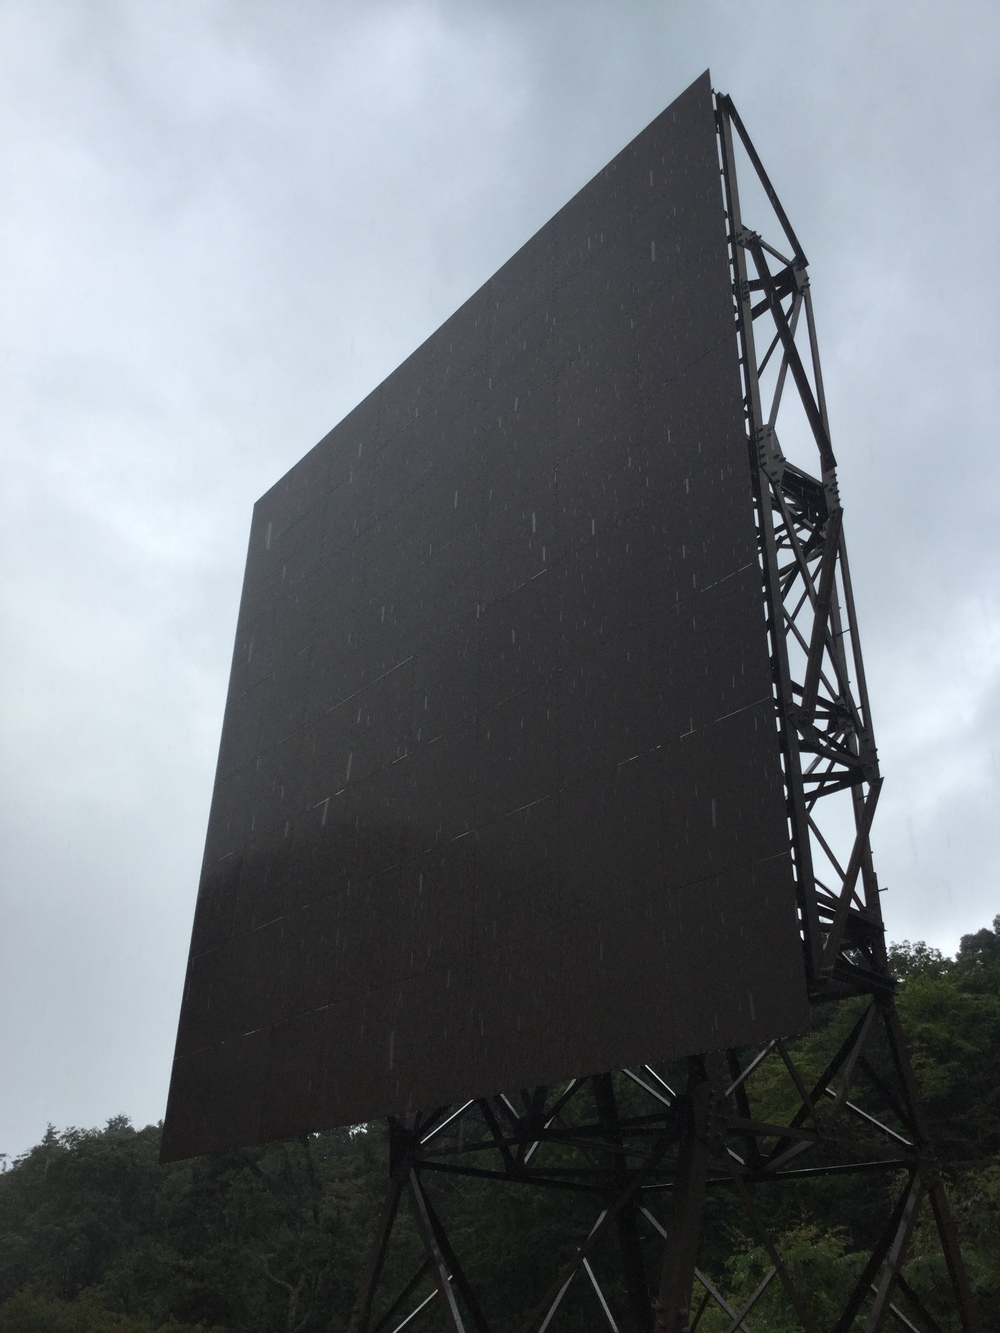 Went hiking in the mountains, rain and fog makes for a Hike to remember! Ominous looking structure found along the way.